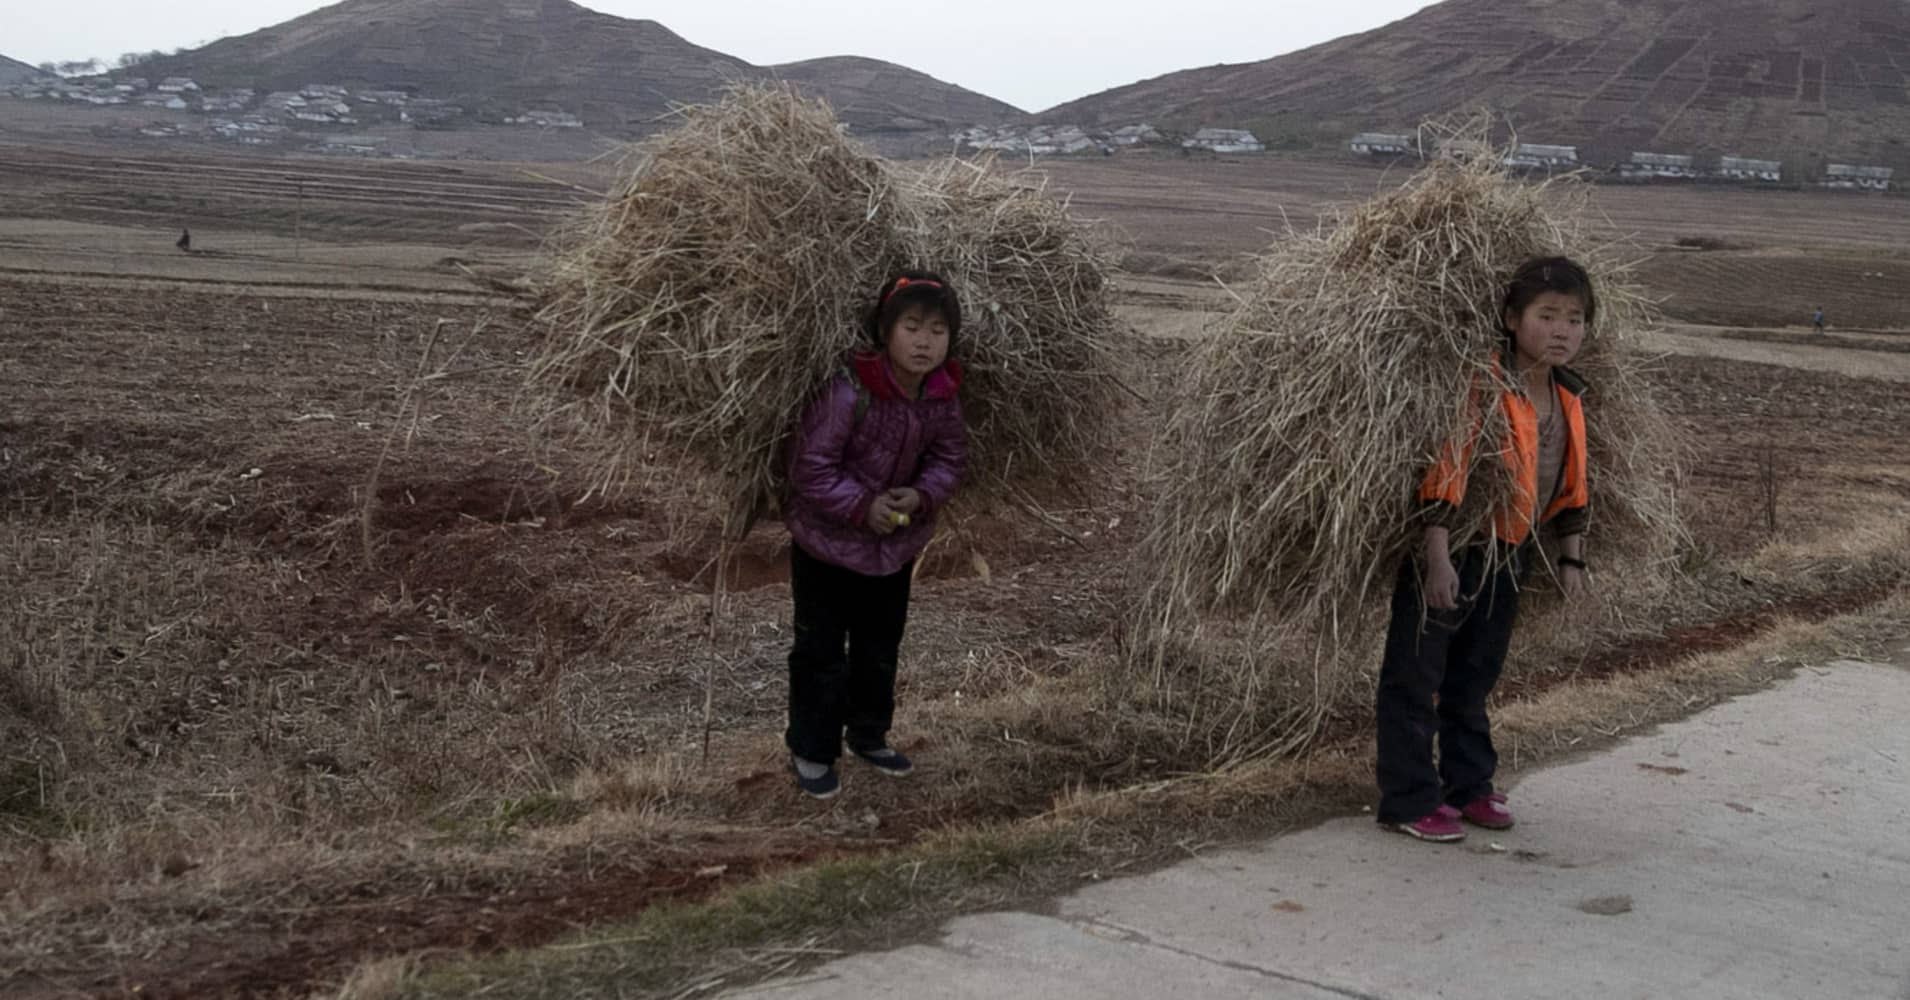 North Korean children carry hay on a road near Mount Kuwol in South Hwanghae province, North Korea.